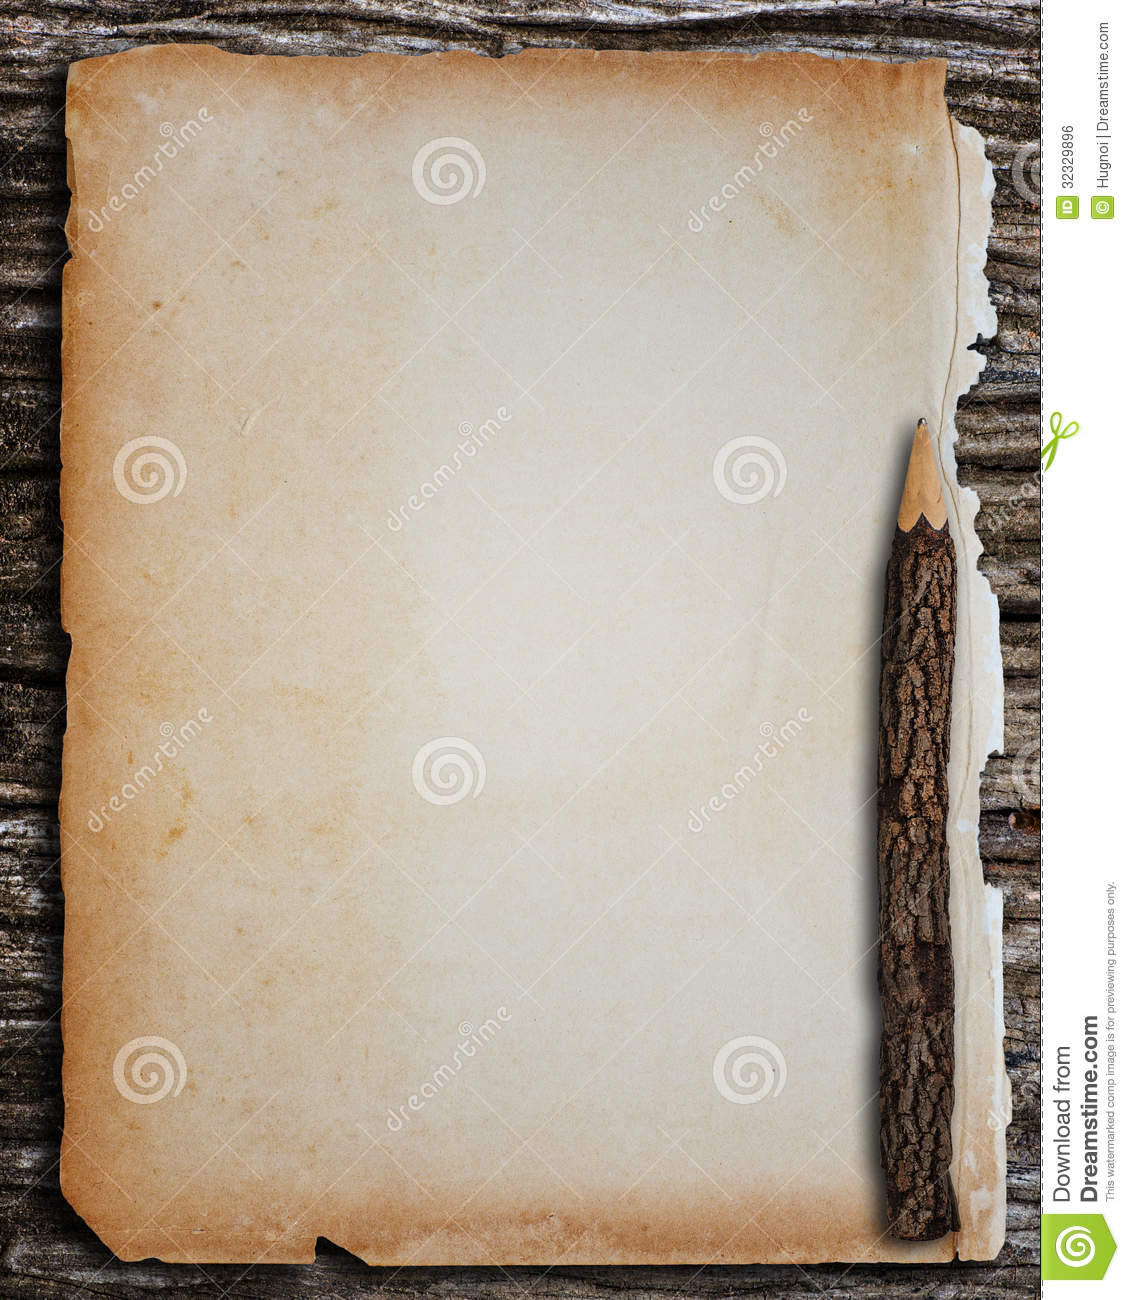 Old Paper Pencil Royalty Free Stock Image - Image: 32329896